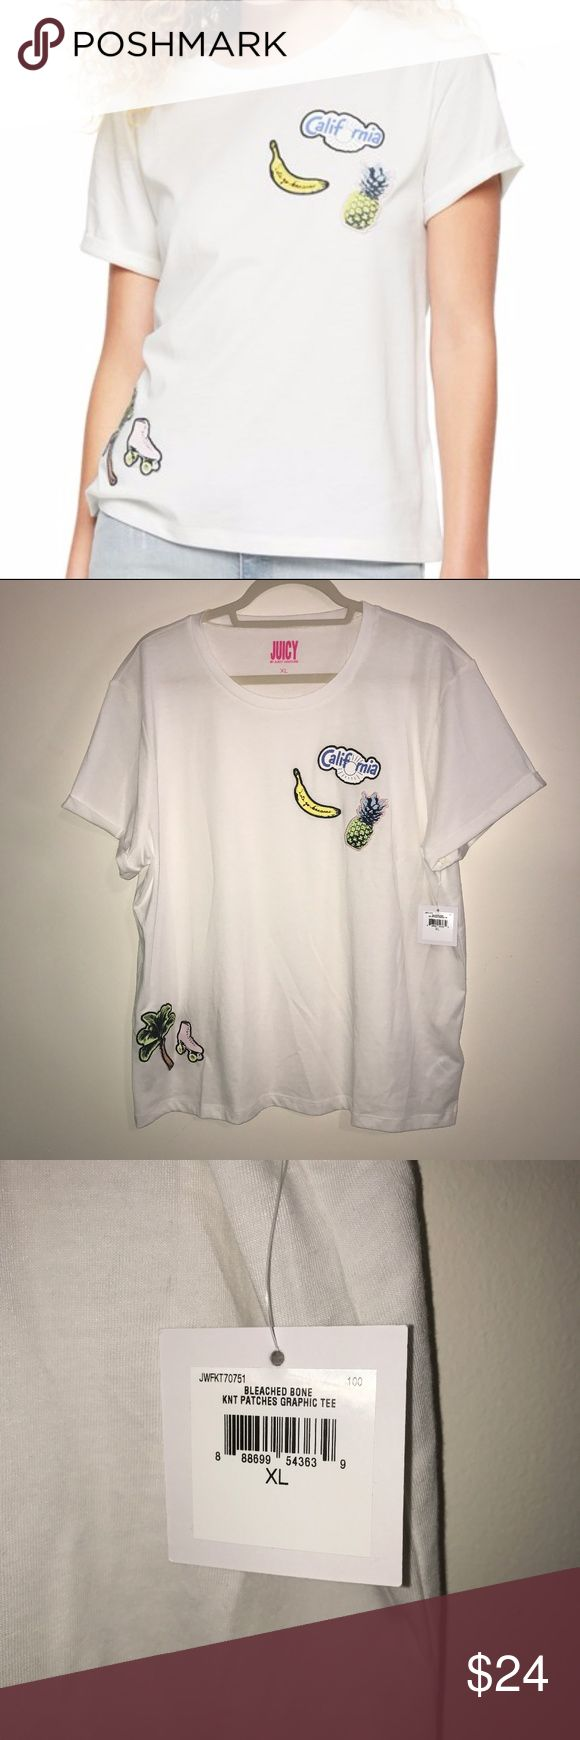 """BNWT XL Patches Graphic Tee by Juicy Couture White BNWT XL Patches Graphic Tee by Juicy Couture. White with adorable patches at upper left breast and lower right hip. Upper left patches are California in a cloud with a sun for the O, a Banana with script saying """"Let's go bananas"""" and a Pineapple. Lower right hip are a palm tree and roller skate. Sleeves are cutely cuffed and this tee is incredibly soft and high quality. No flaws. First photo courtesy of brand. Still available on website…"""